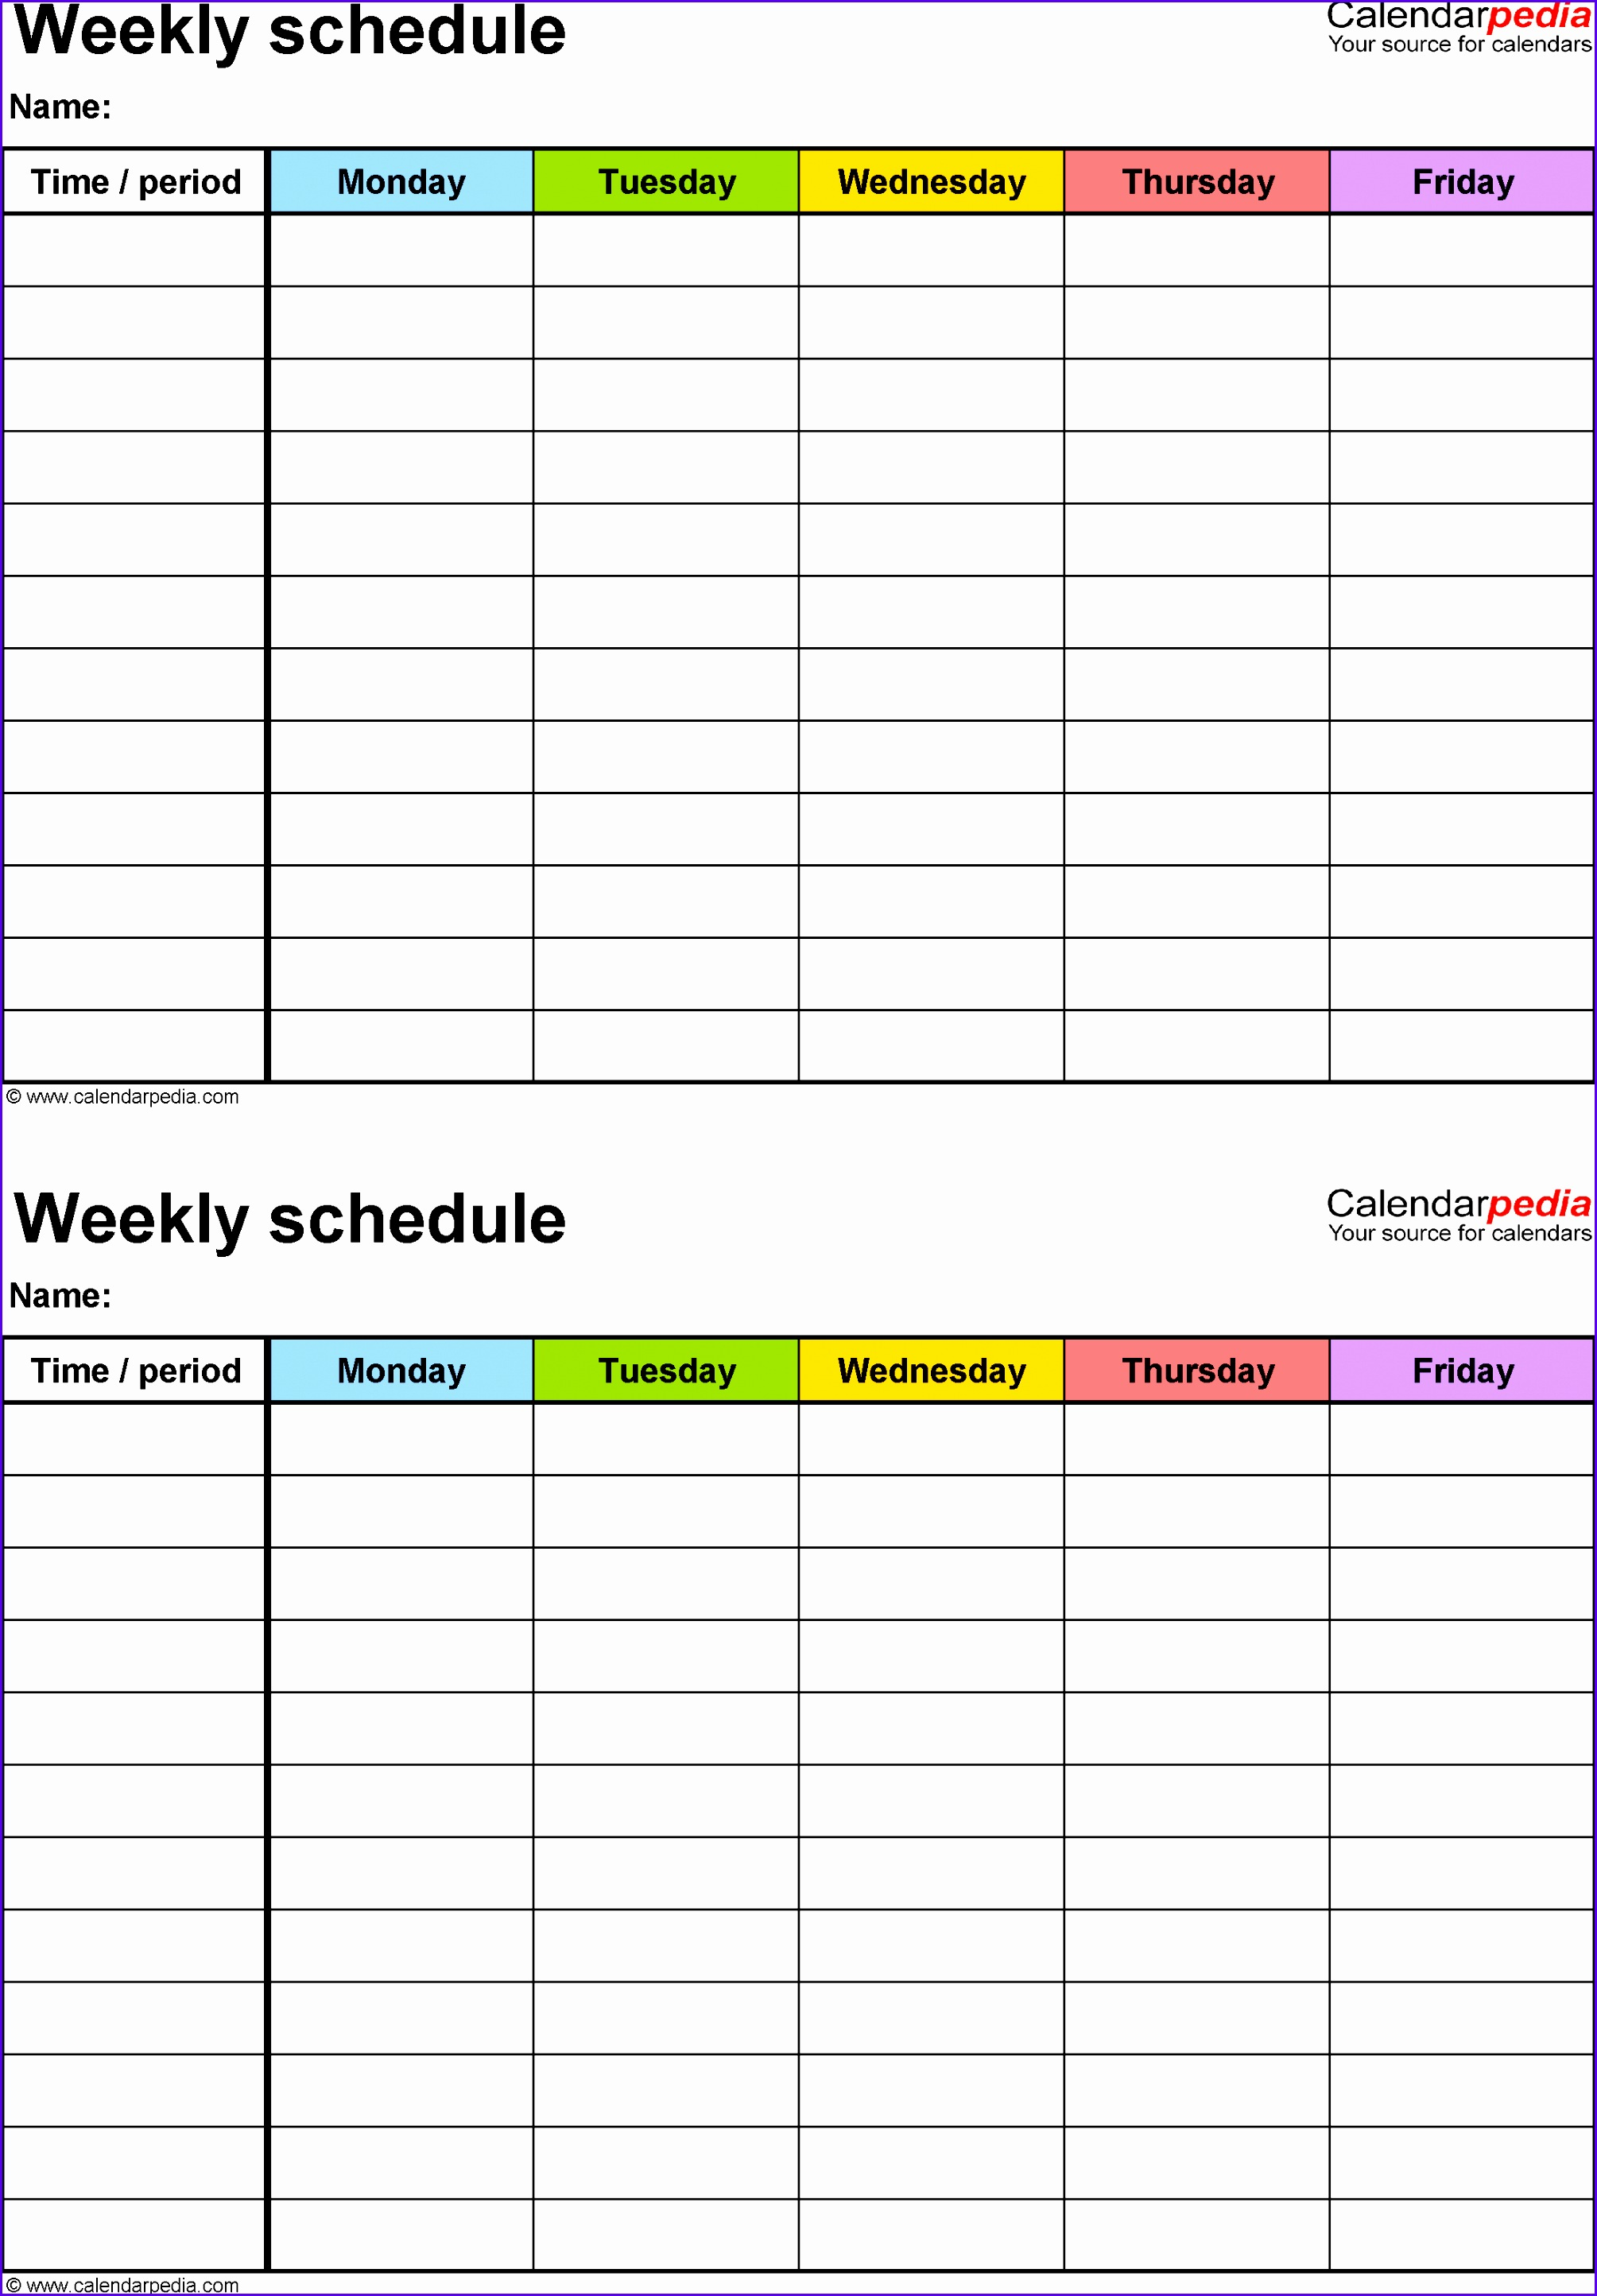 Weekly schedule template for Excel version 3 2 schedules on one page portrait 20092888